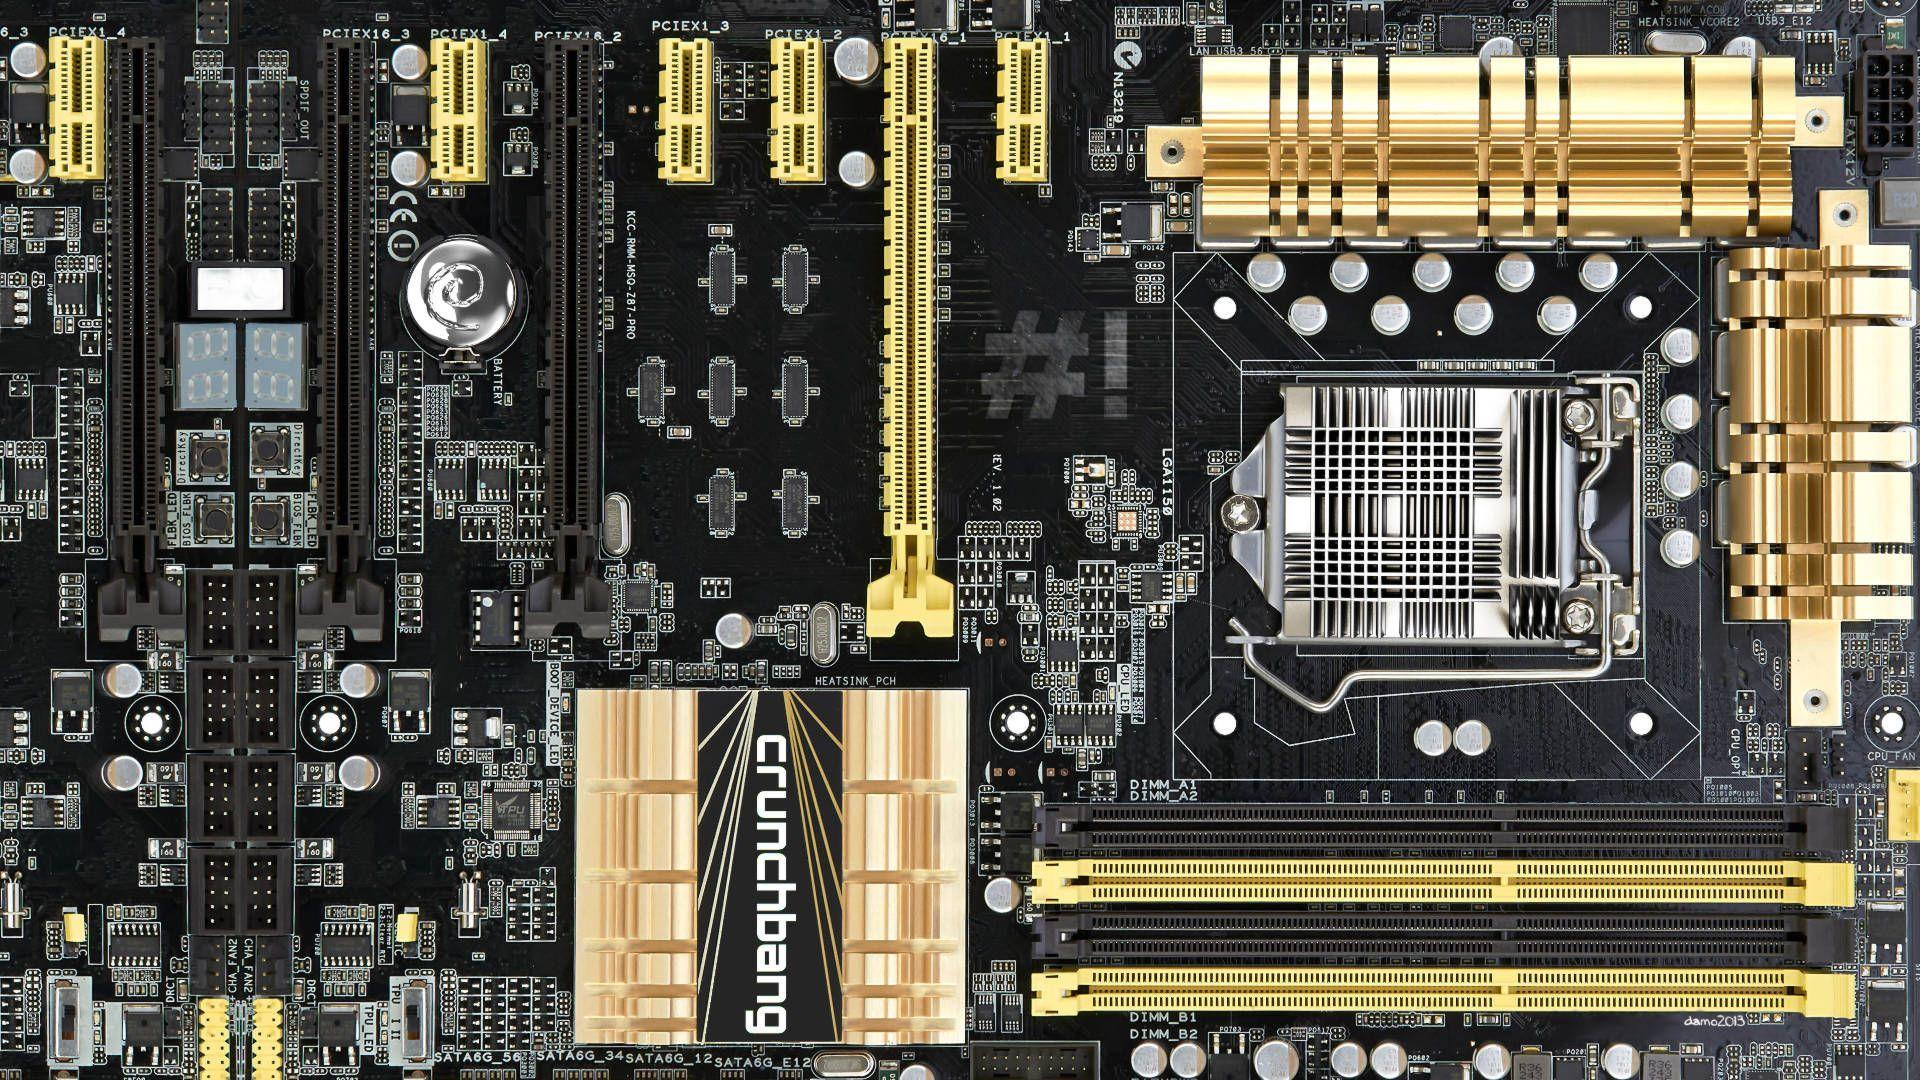 Motherboard HD Wallpaper | 1920x1080 | ID:60164